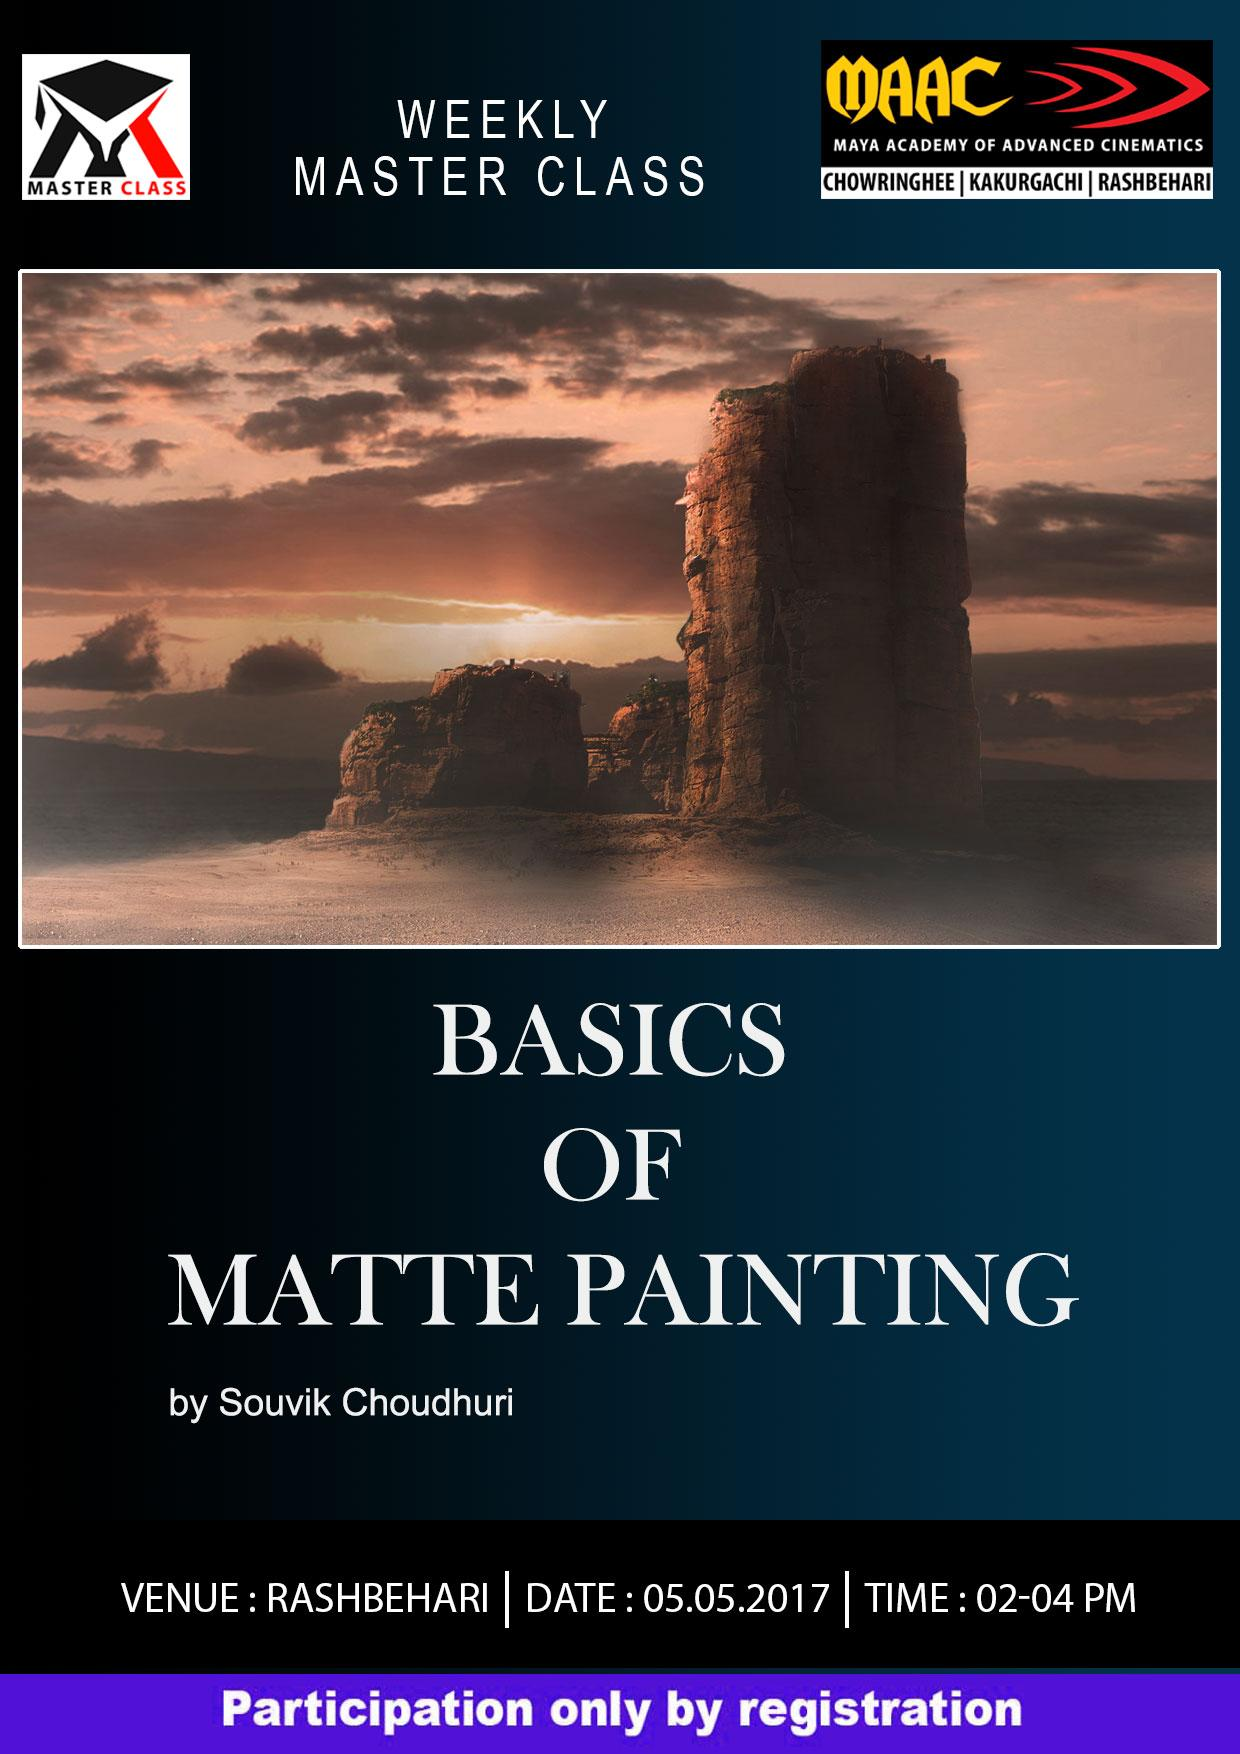 Weekly Master Class on Basic Of Matte Painting - Souvik Choudhuri